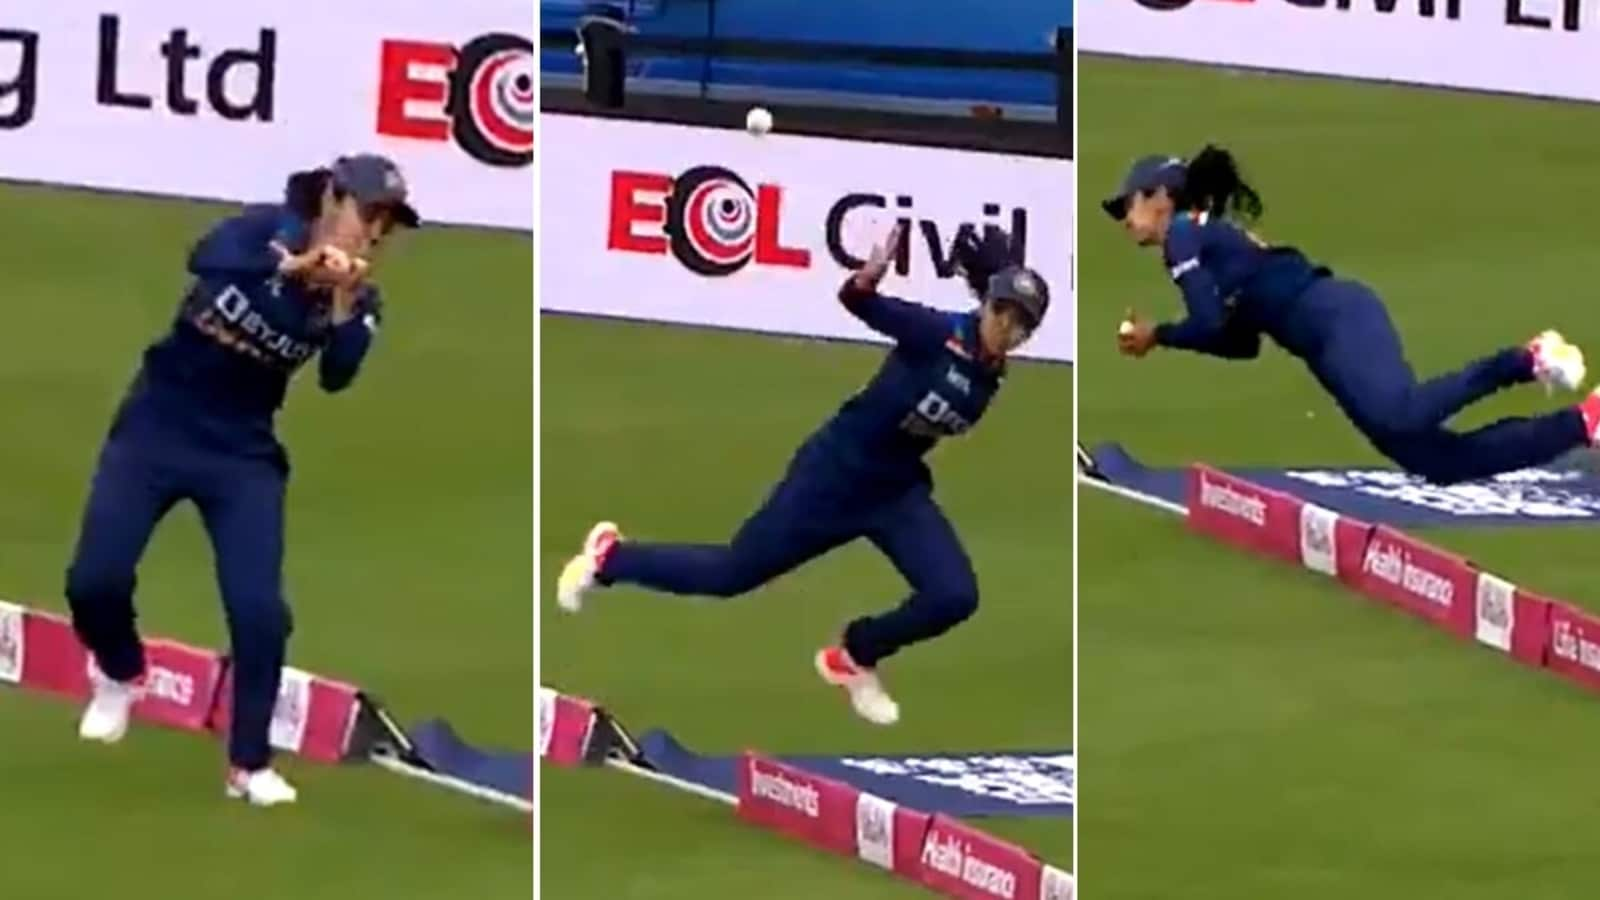 India's Harleen Deol takes one of the most jaw-dropping catches ever seen,  England player claps at her effort: Watch | Cricket - Hindustan Times